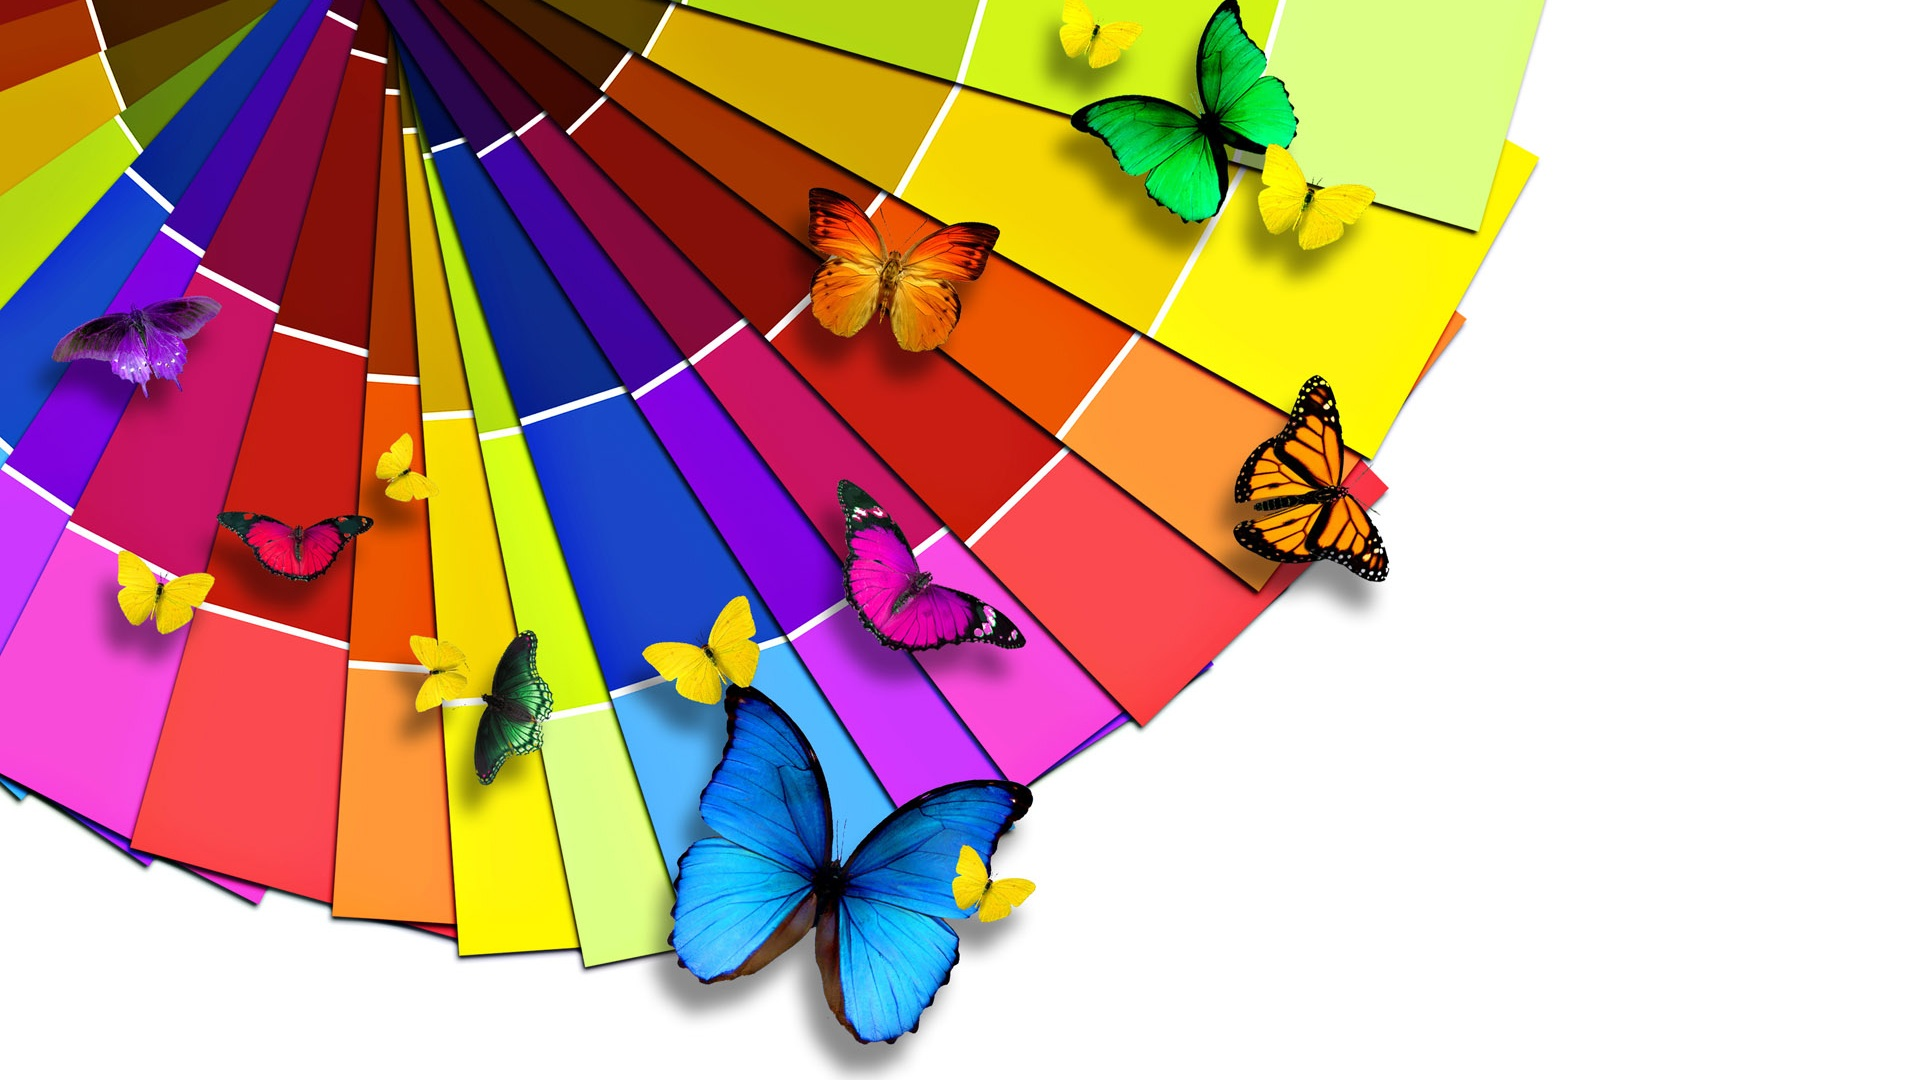 Bright-color-palette-and-the-Butterfly_1920x1080